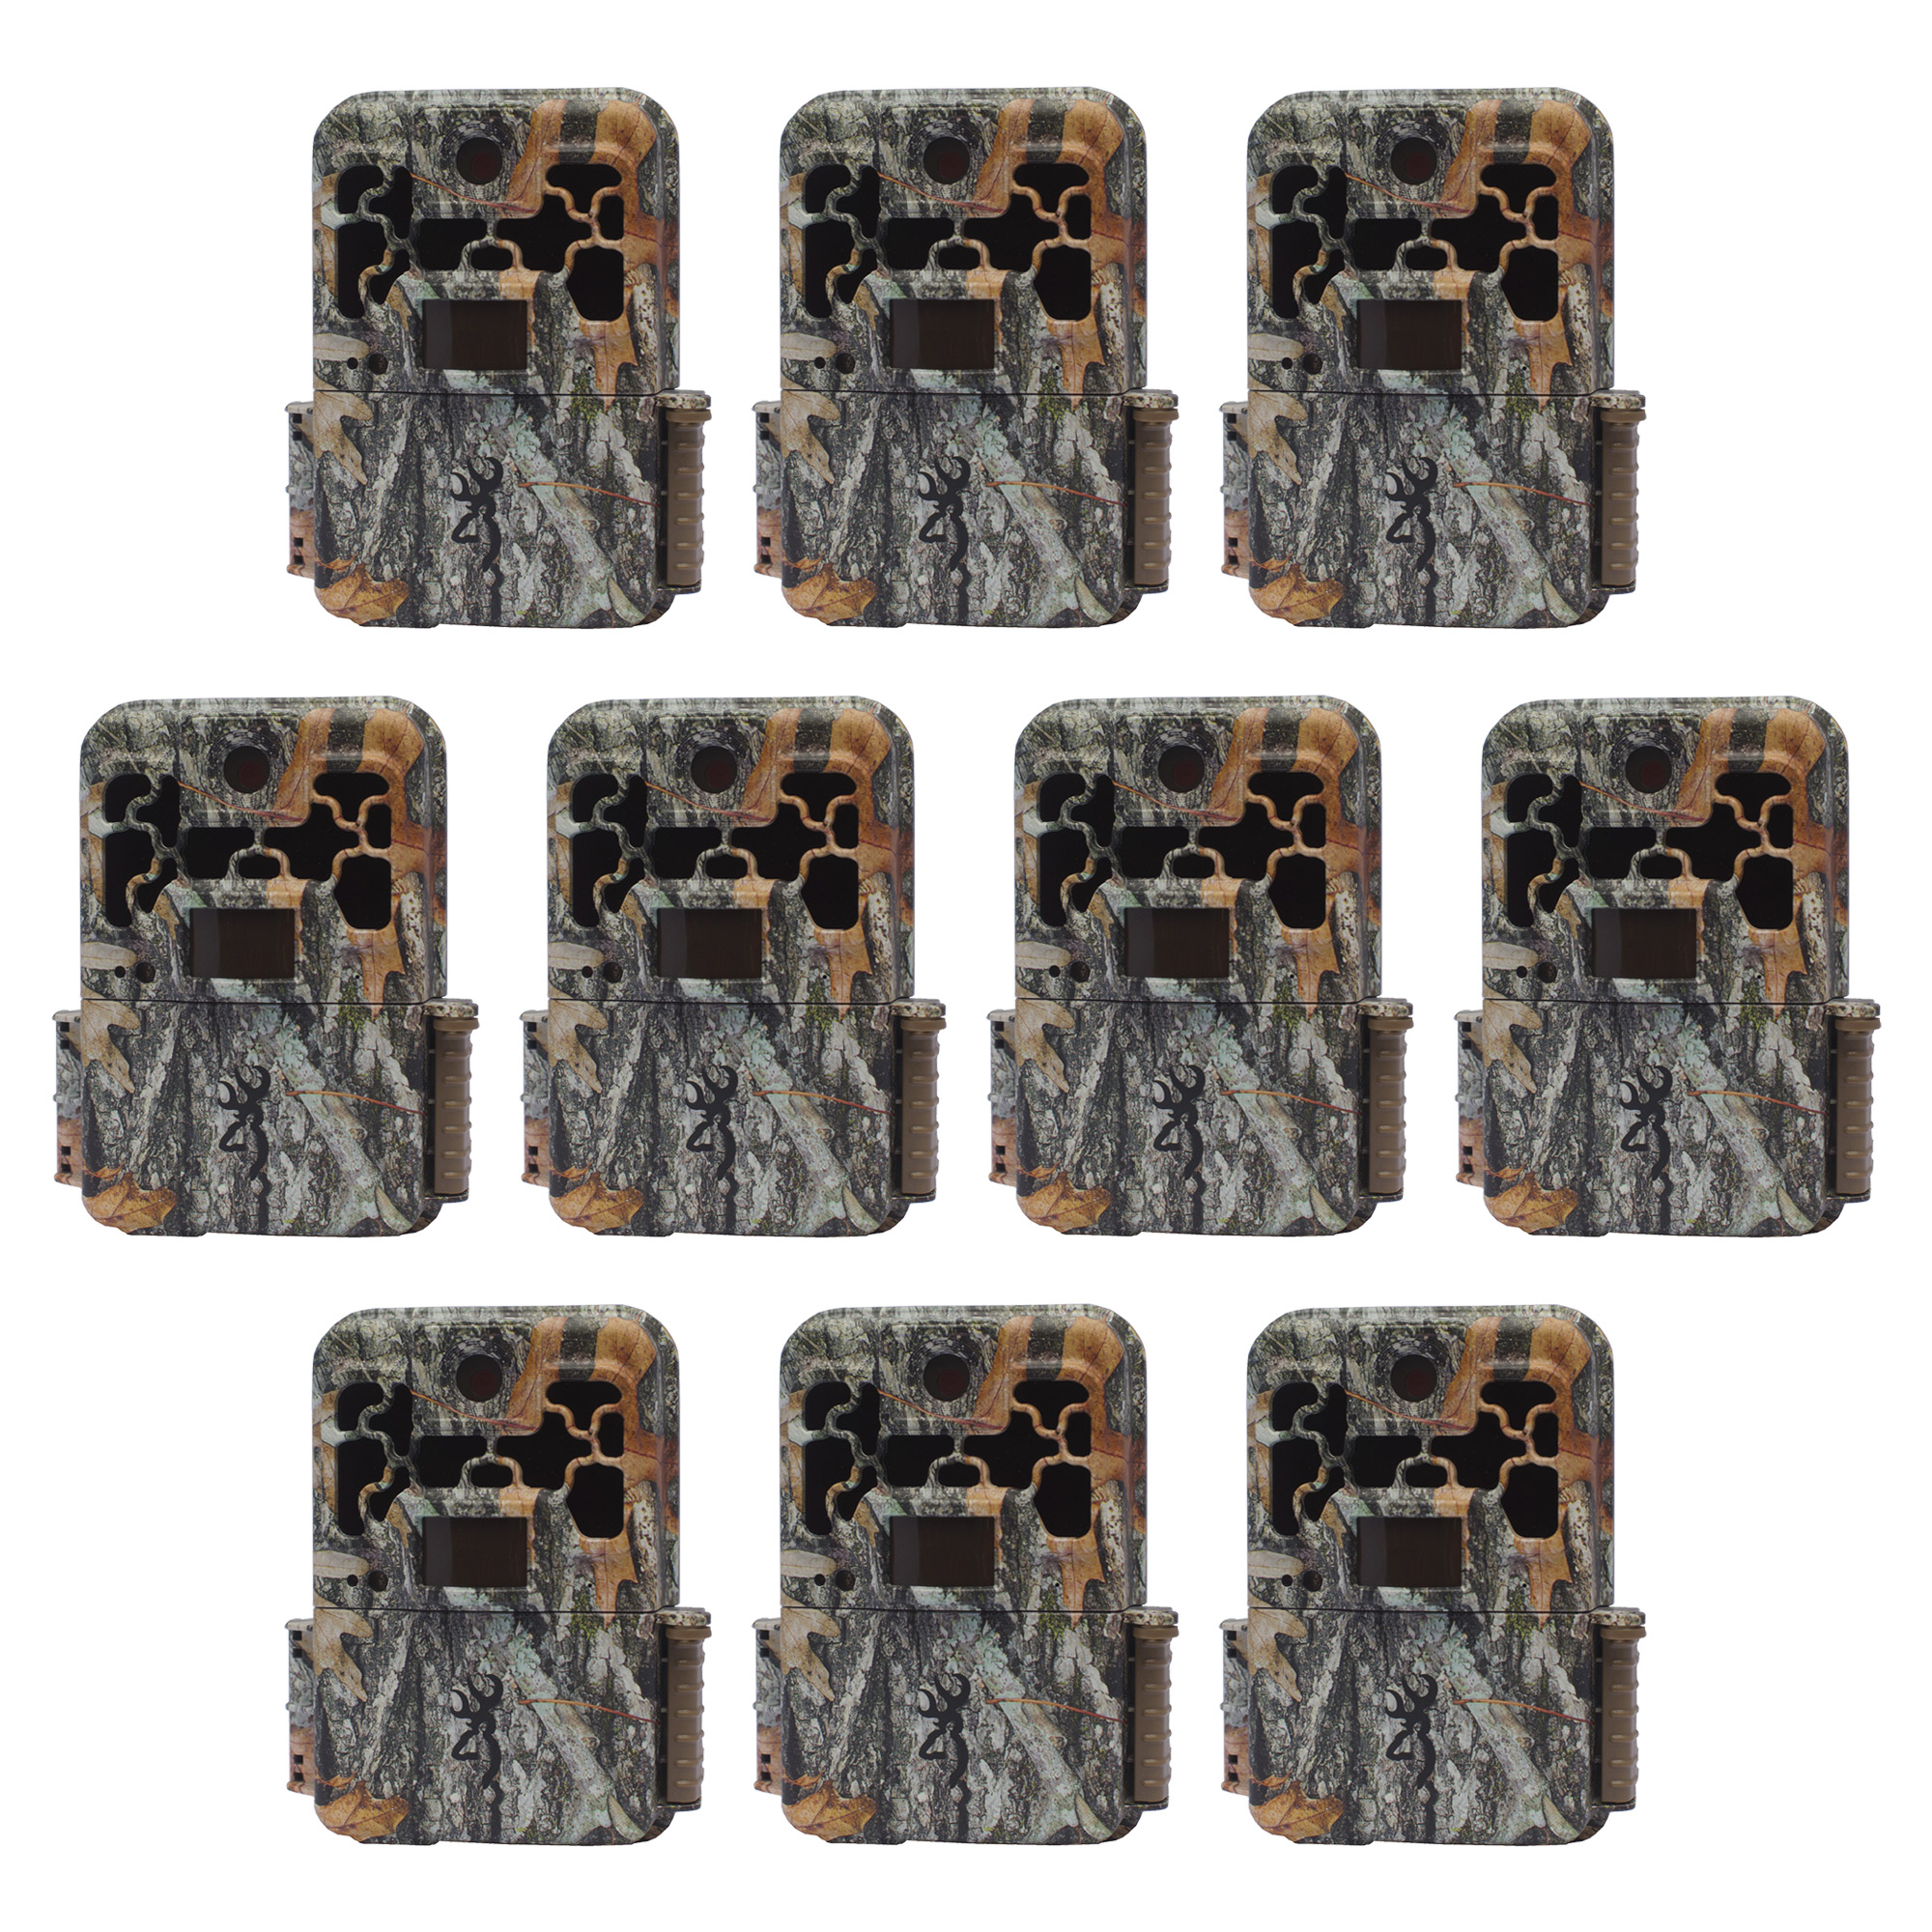 Browning Trail Cameras SpecOps FHD Extreme 20MP Game Camera, 10 Pack | BTC8FHDPX by Browning Trail Cameras